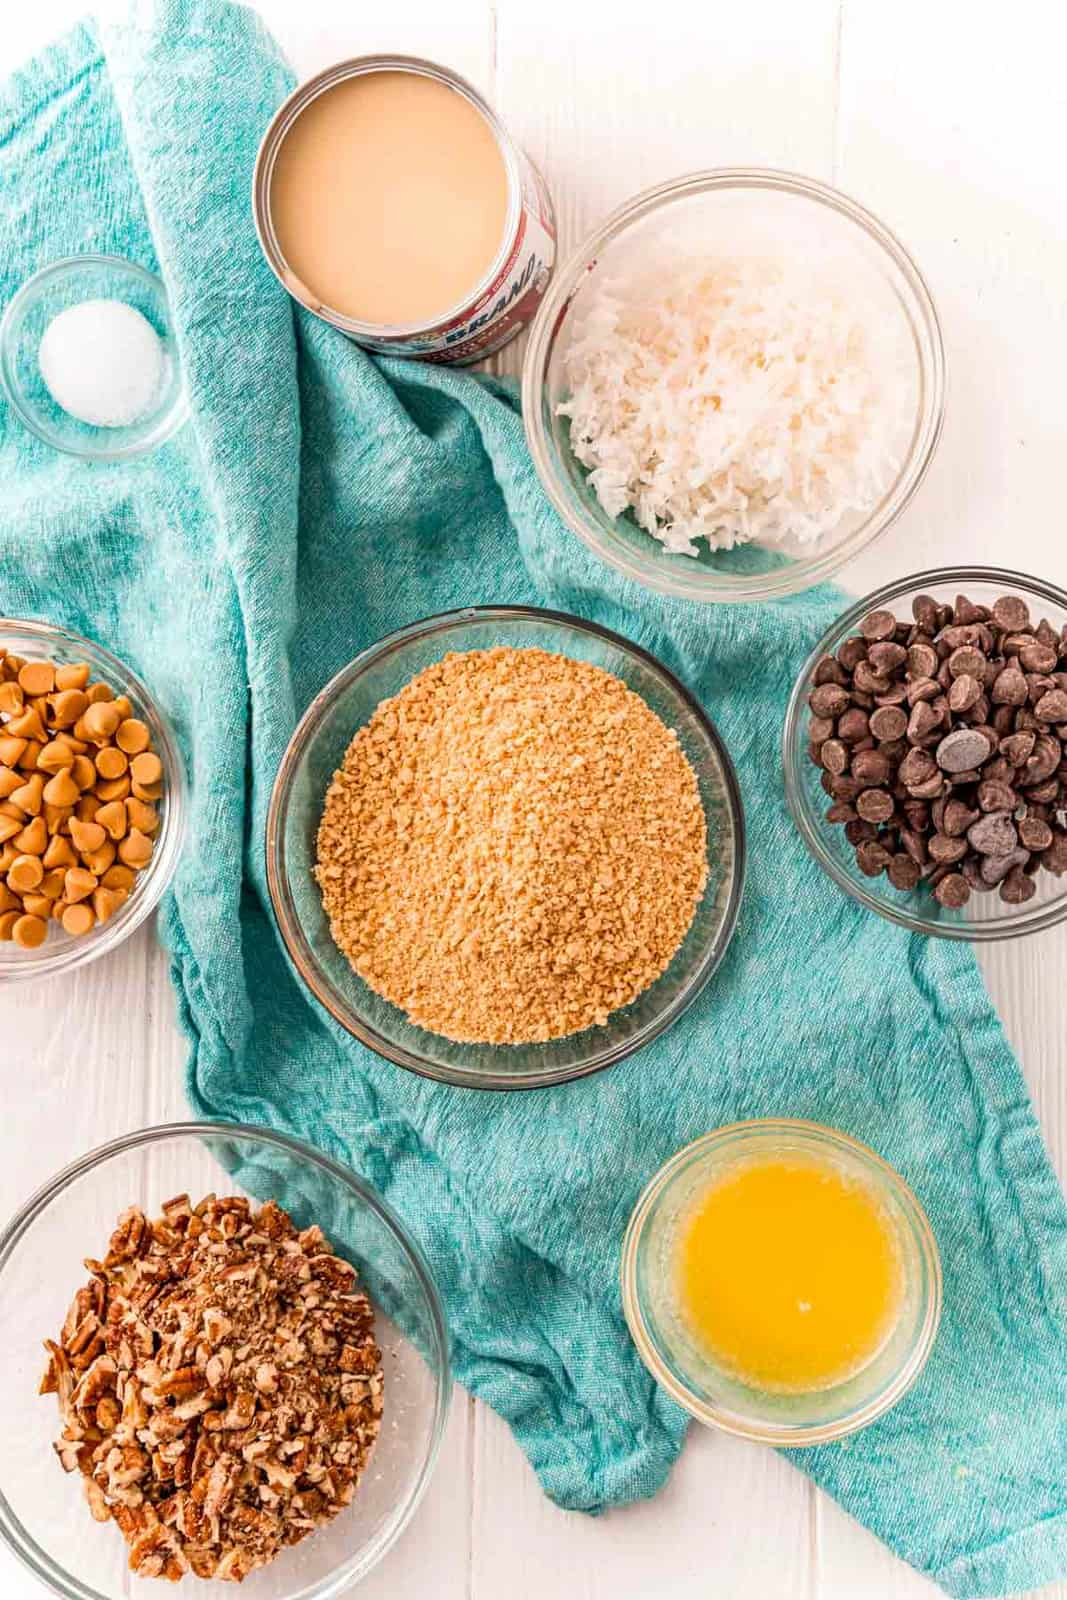 Ingredients needed to make Hello Dolly Bars